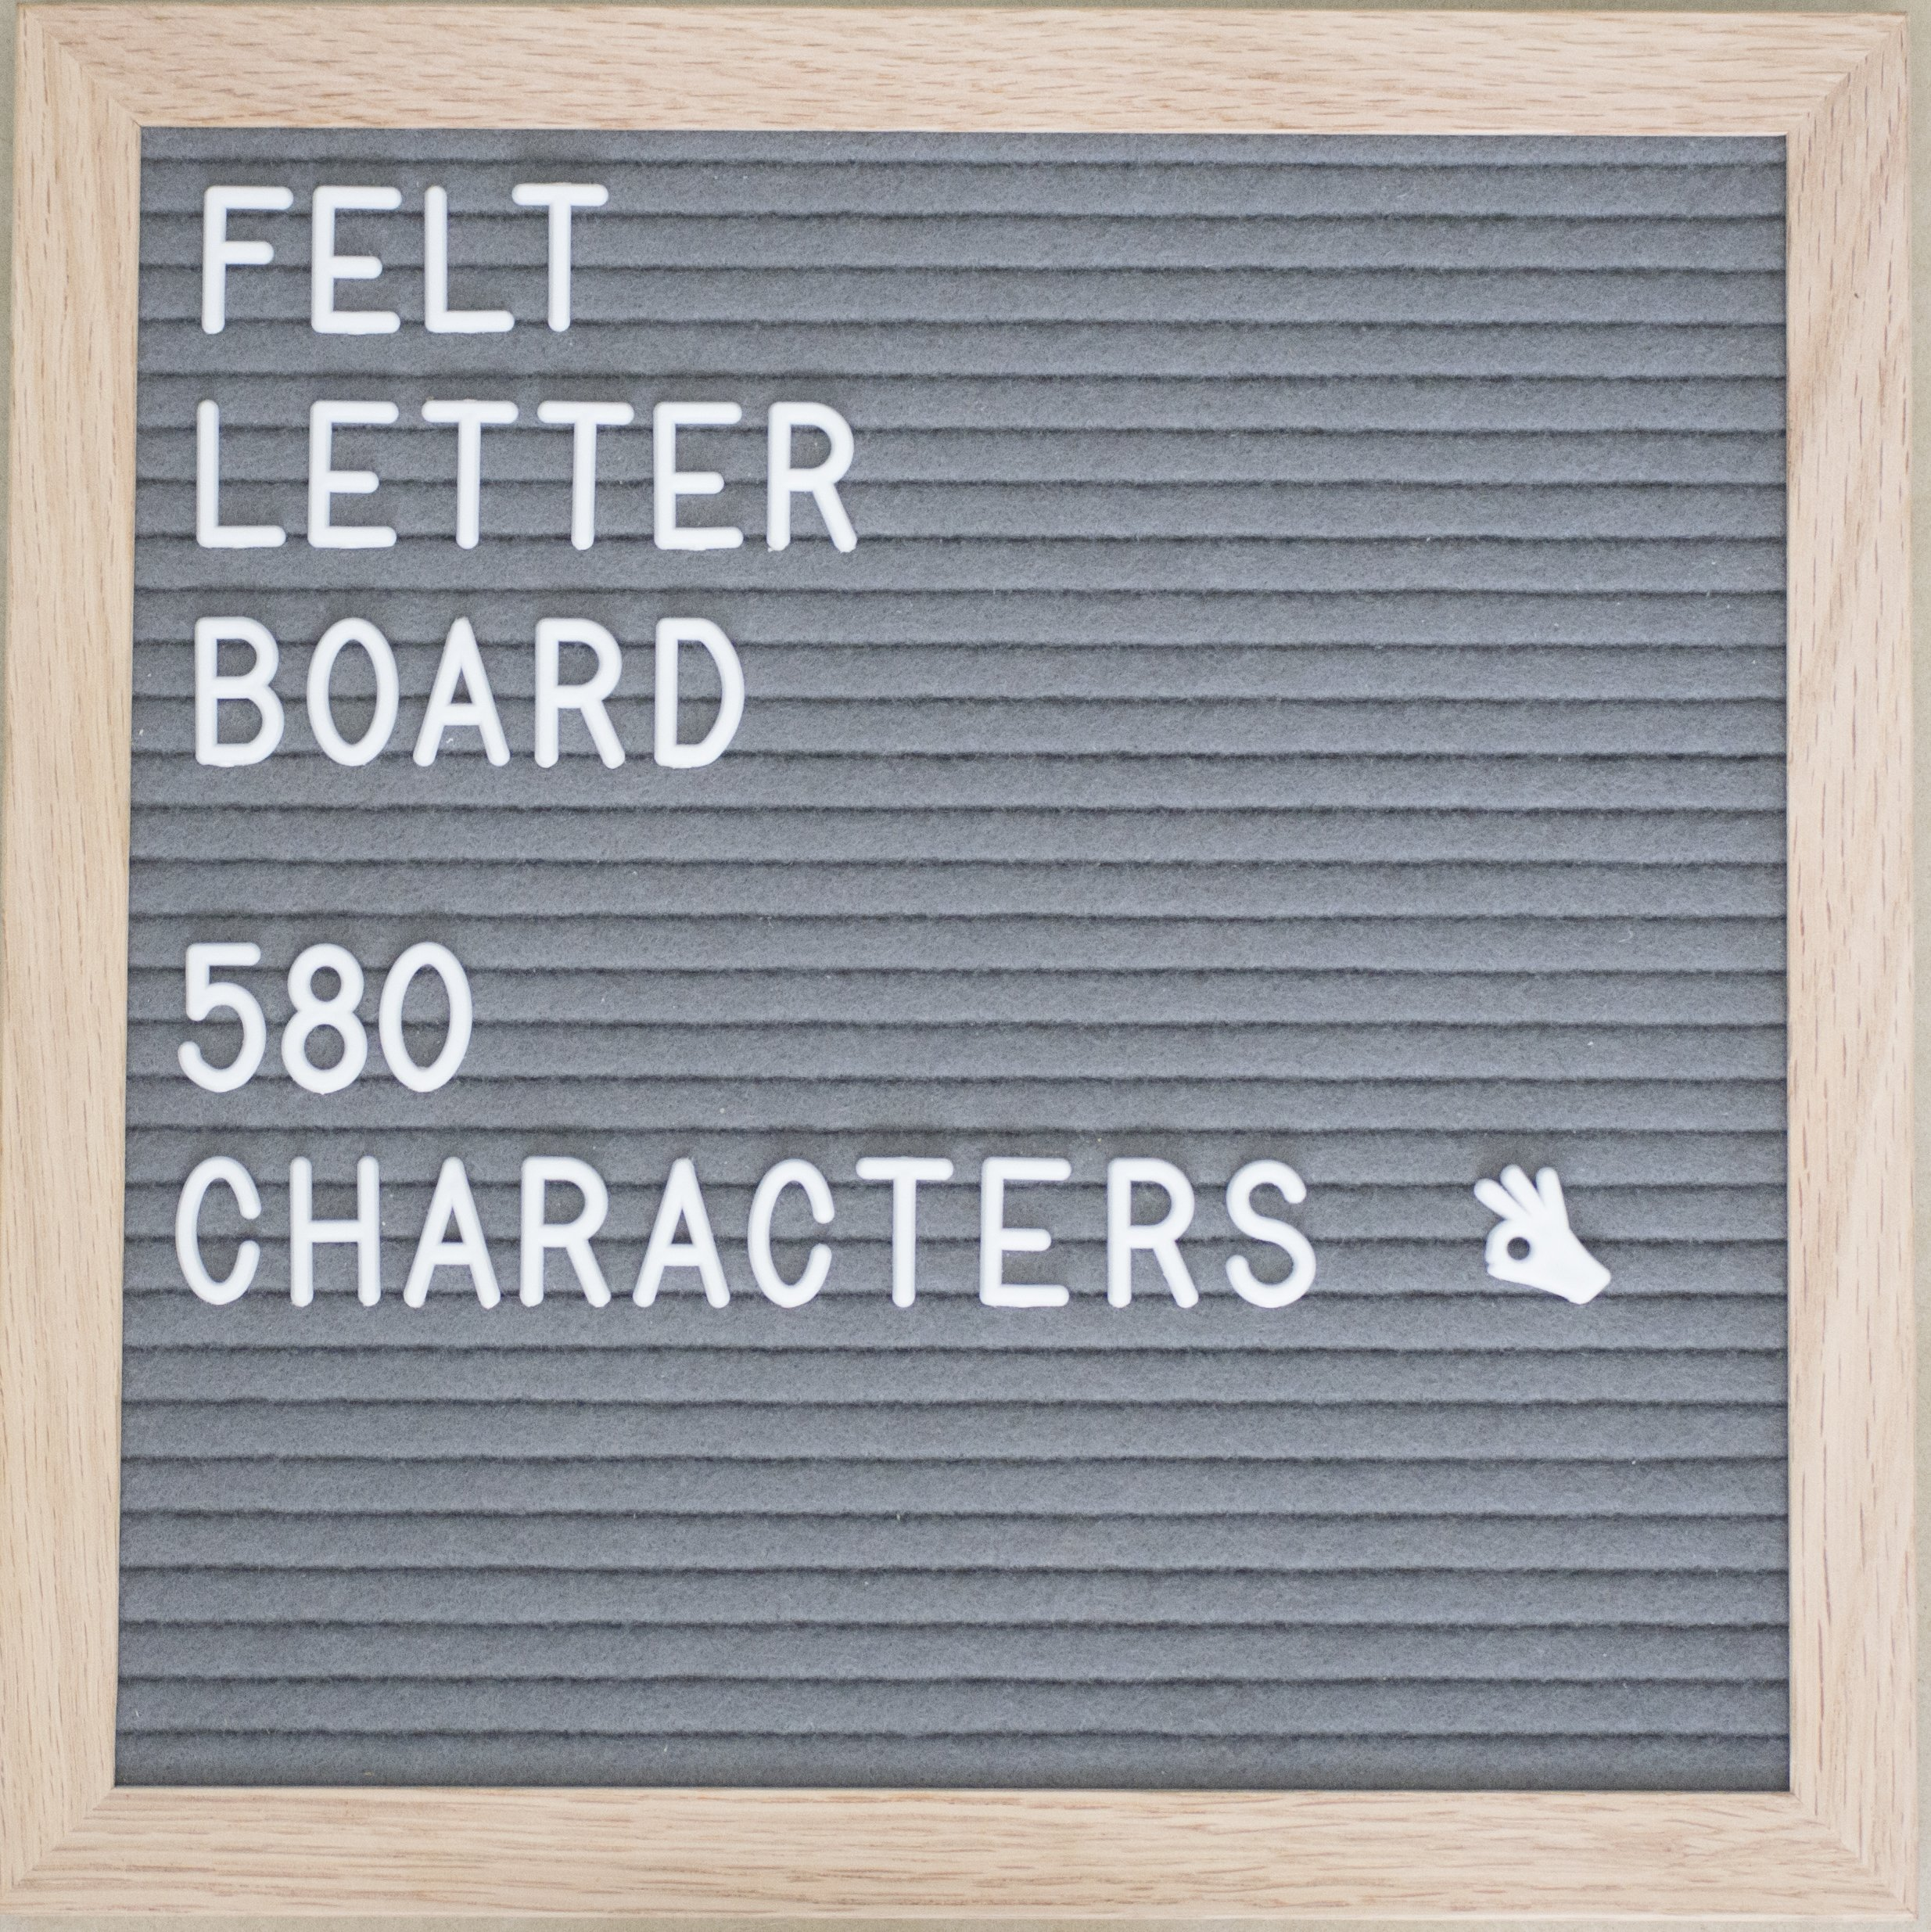 Walking Duck Letter Board - Gray 10x10 inch Felt Board with Oak Wood Frame and 580 Peg on White Letters, Numbers, Symbols, Emojis - Changeable Characters for Creative DIY Messages - Incl. Accessories